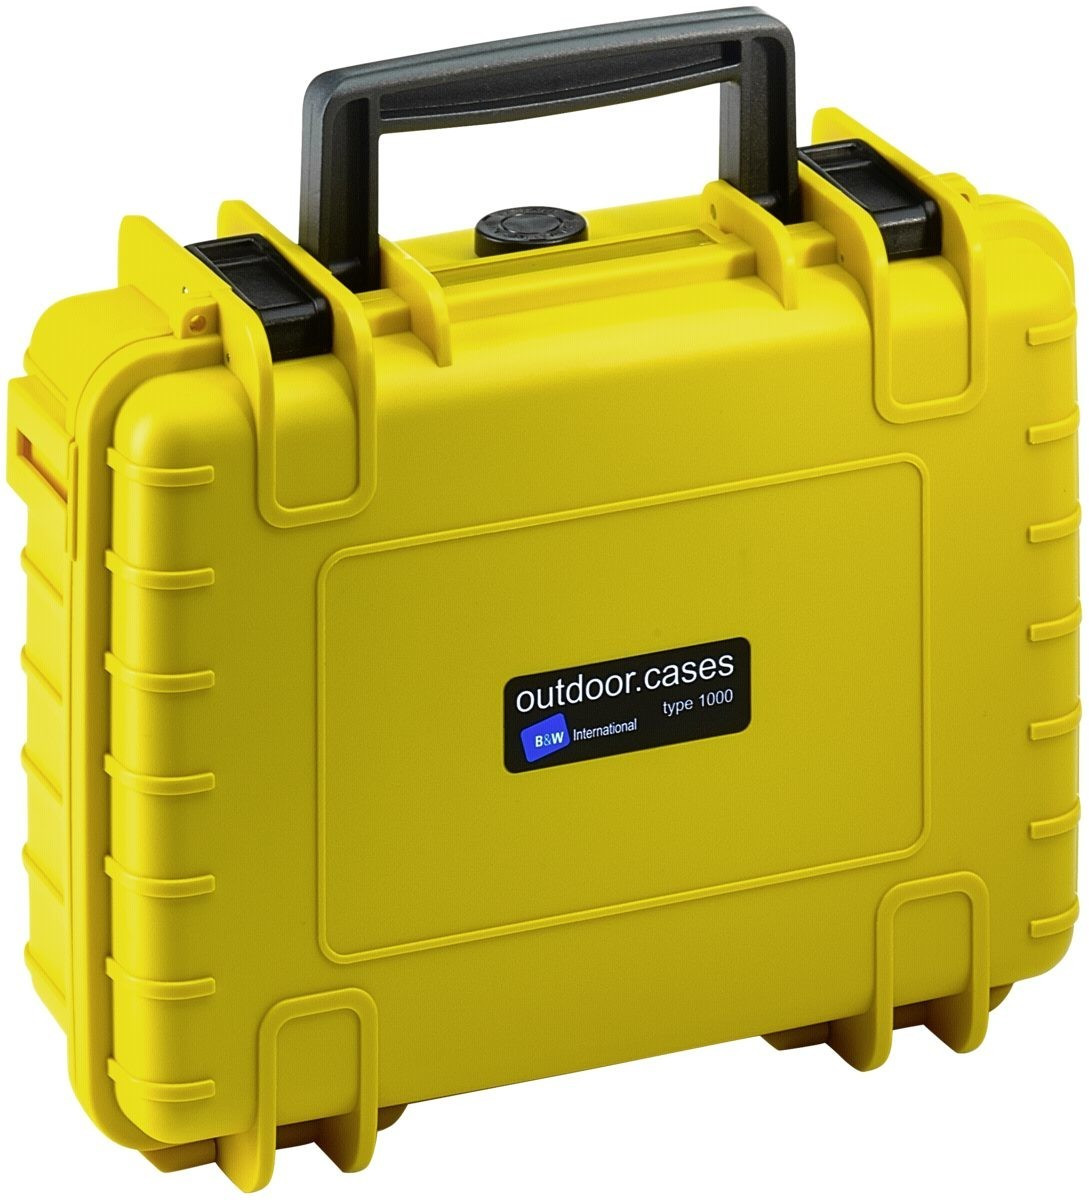 Image of B&W Outdoor Case Type 1000 incl. RPD yellow